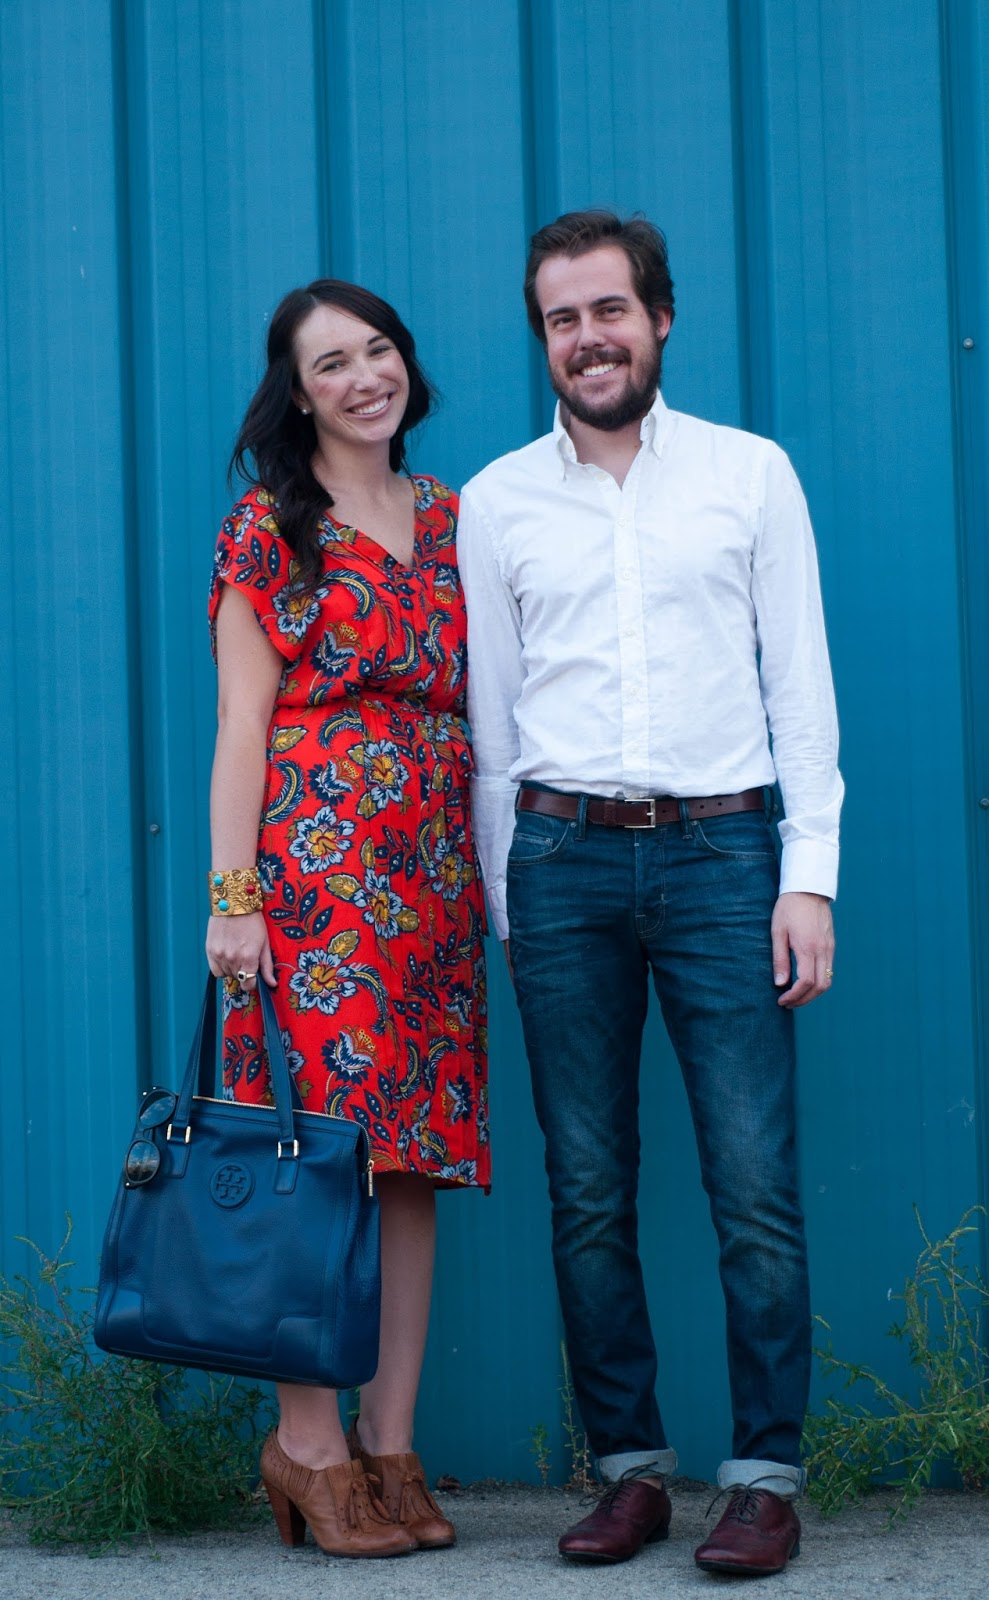 couples fashion, couples style, street style, lands end giveaway, lands end dress, all saints cigarette jeans, ootd